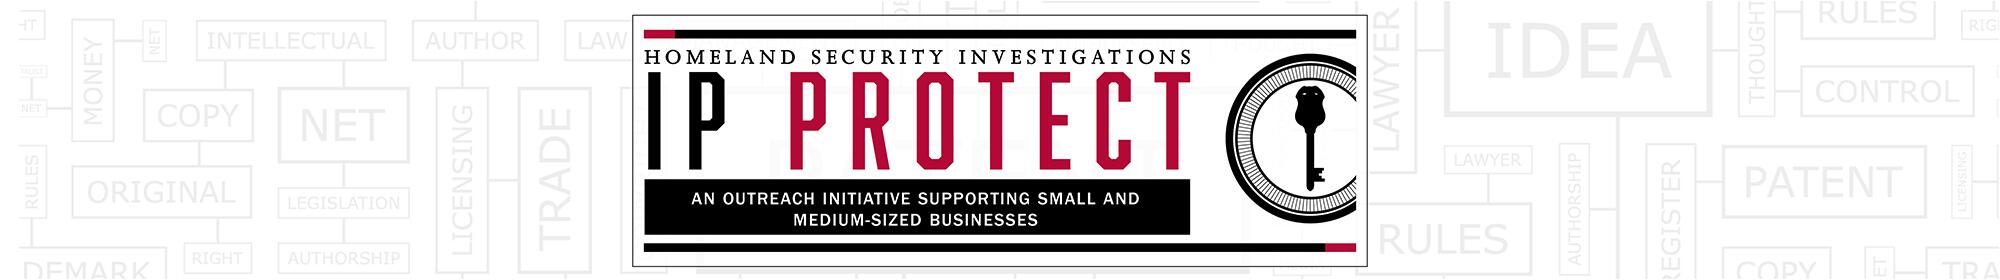 IPR Center launches community-based initiative to help small business protect themselves against intellectual property theft, other fraud